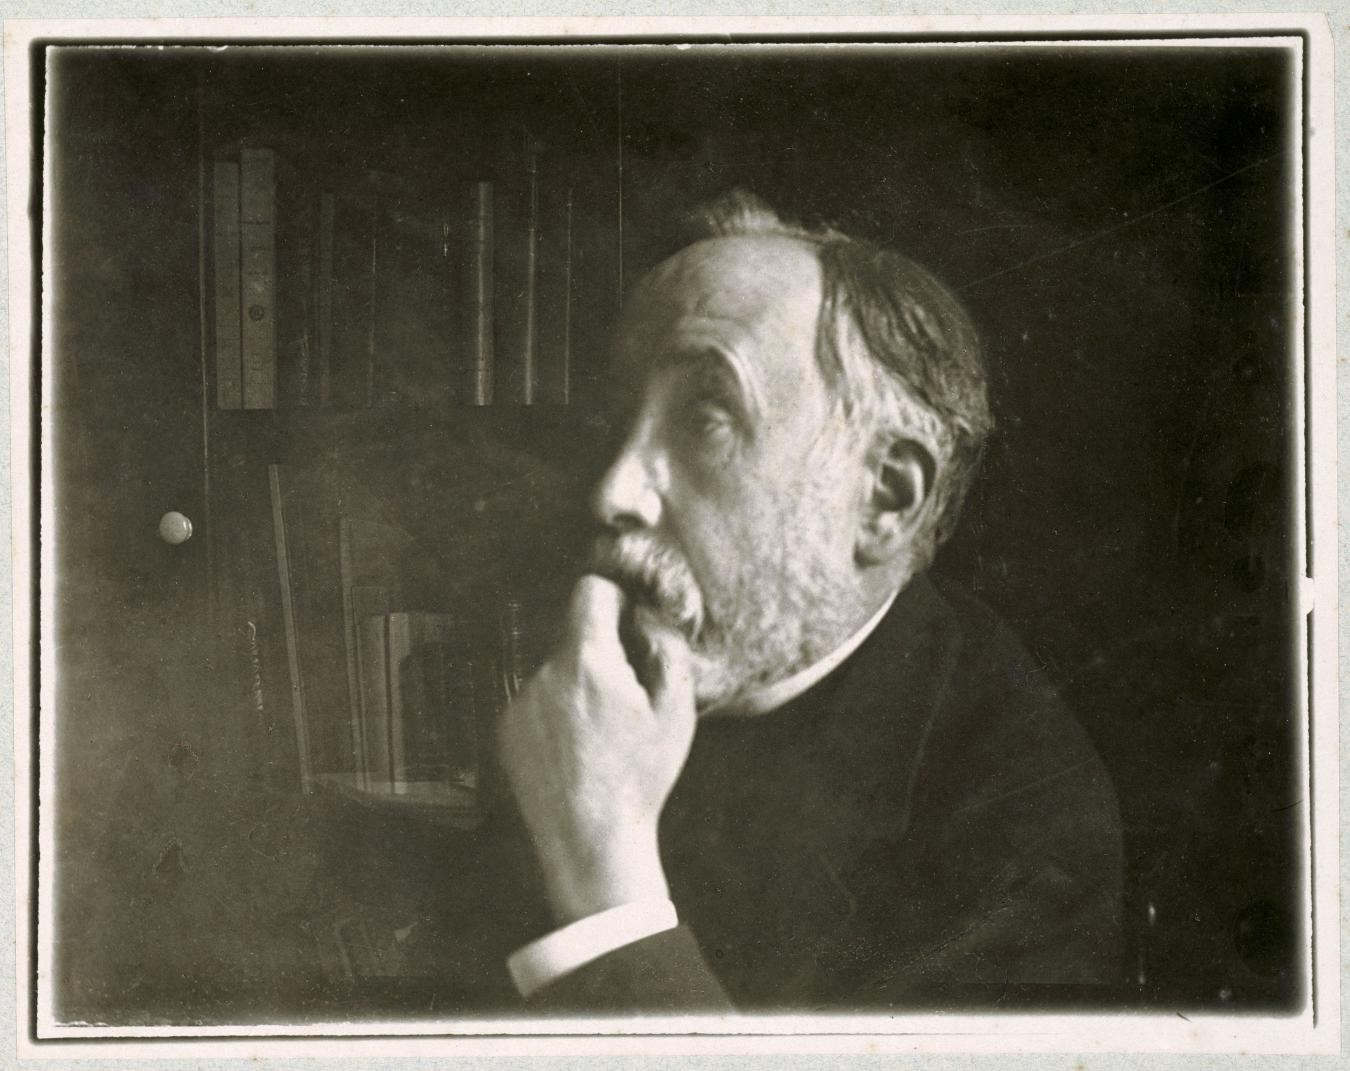 FOR BLOG POST ONLY - Degas self-portrait in library